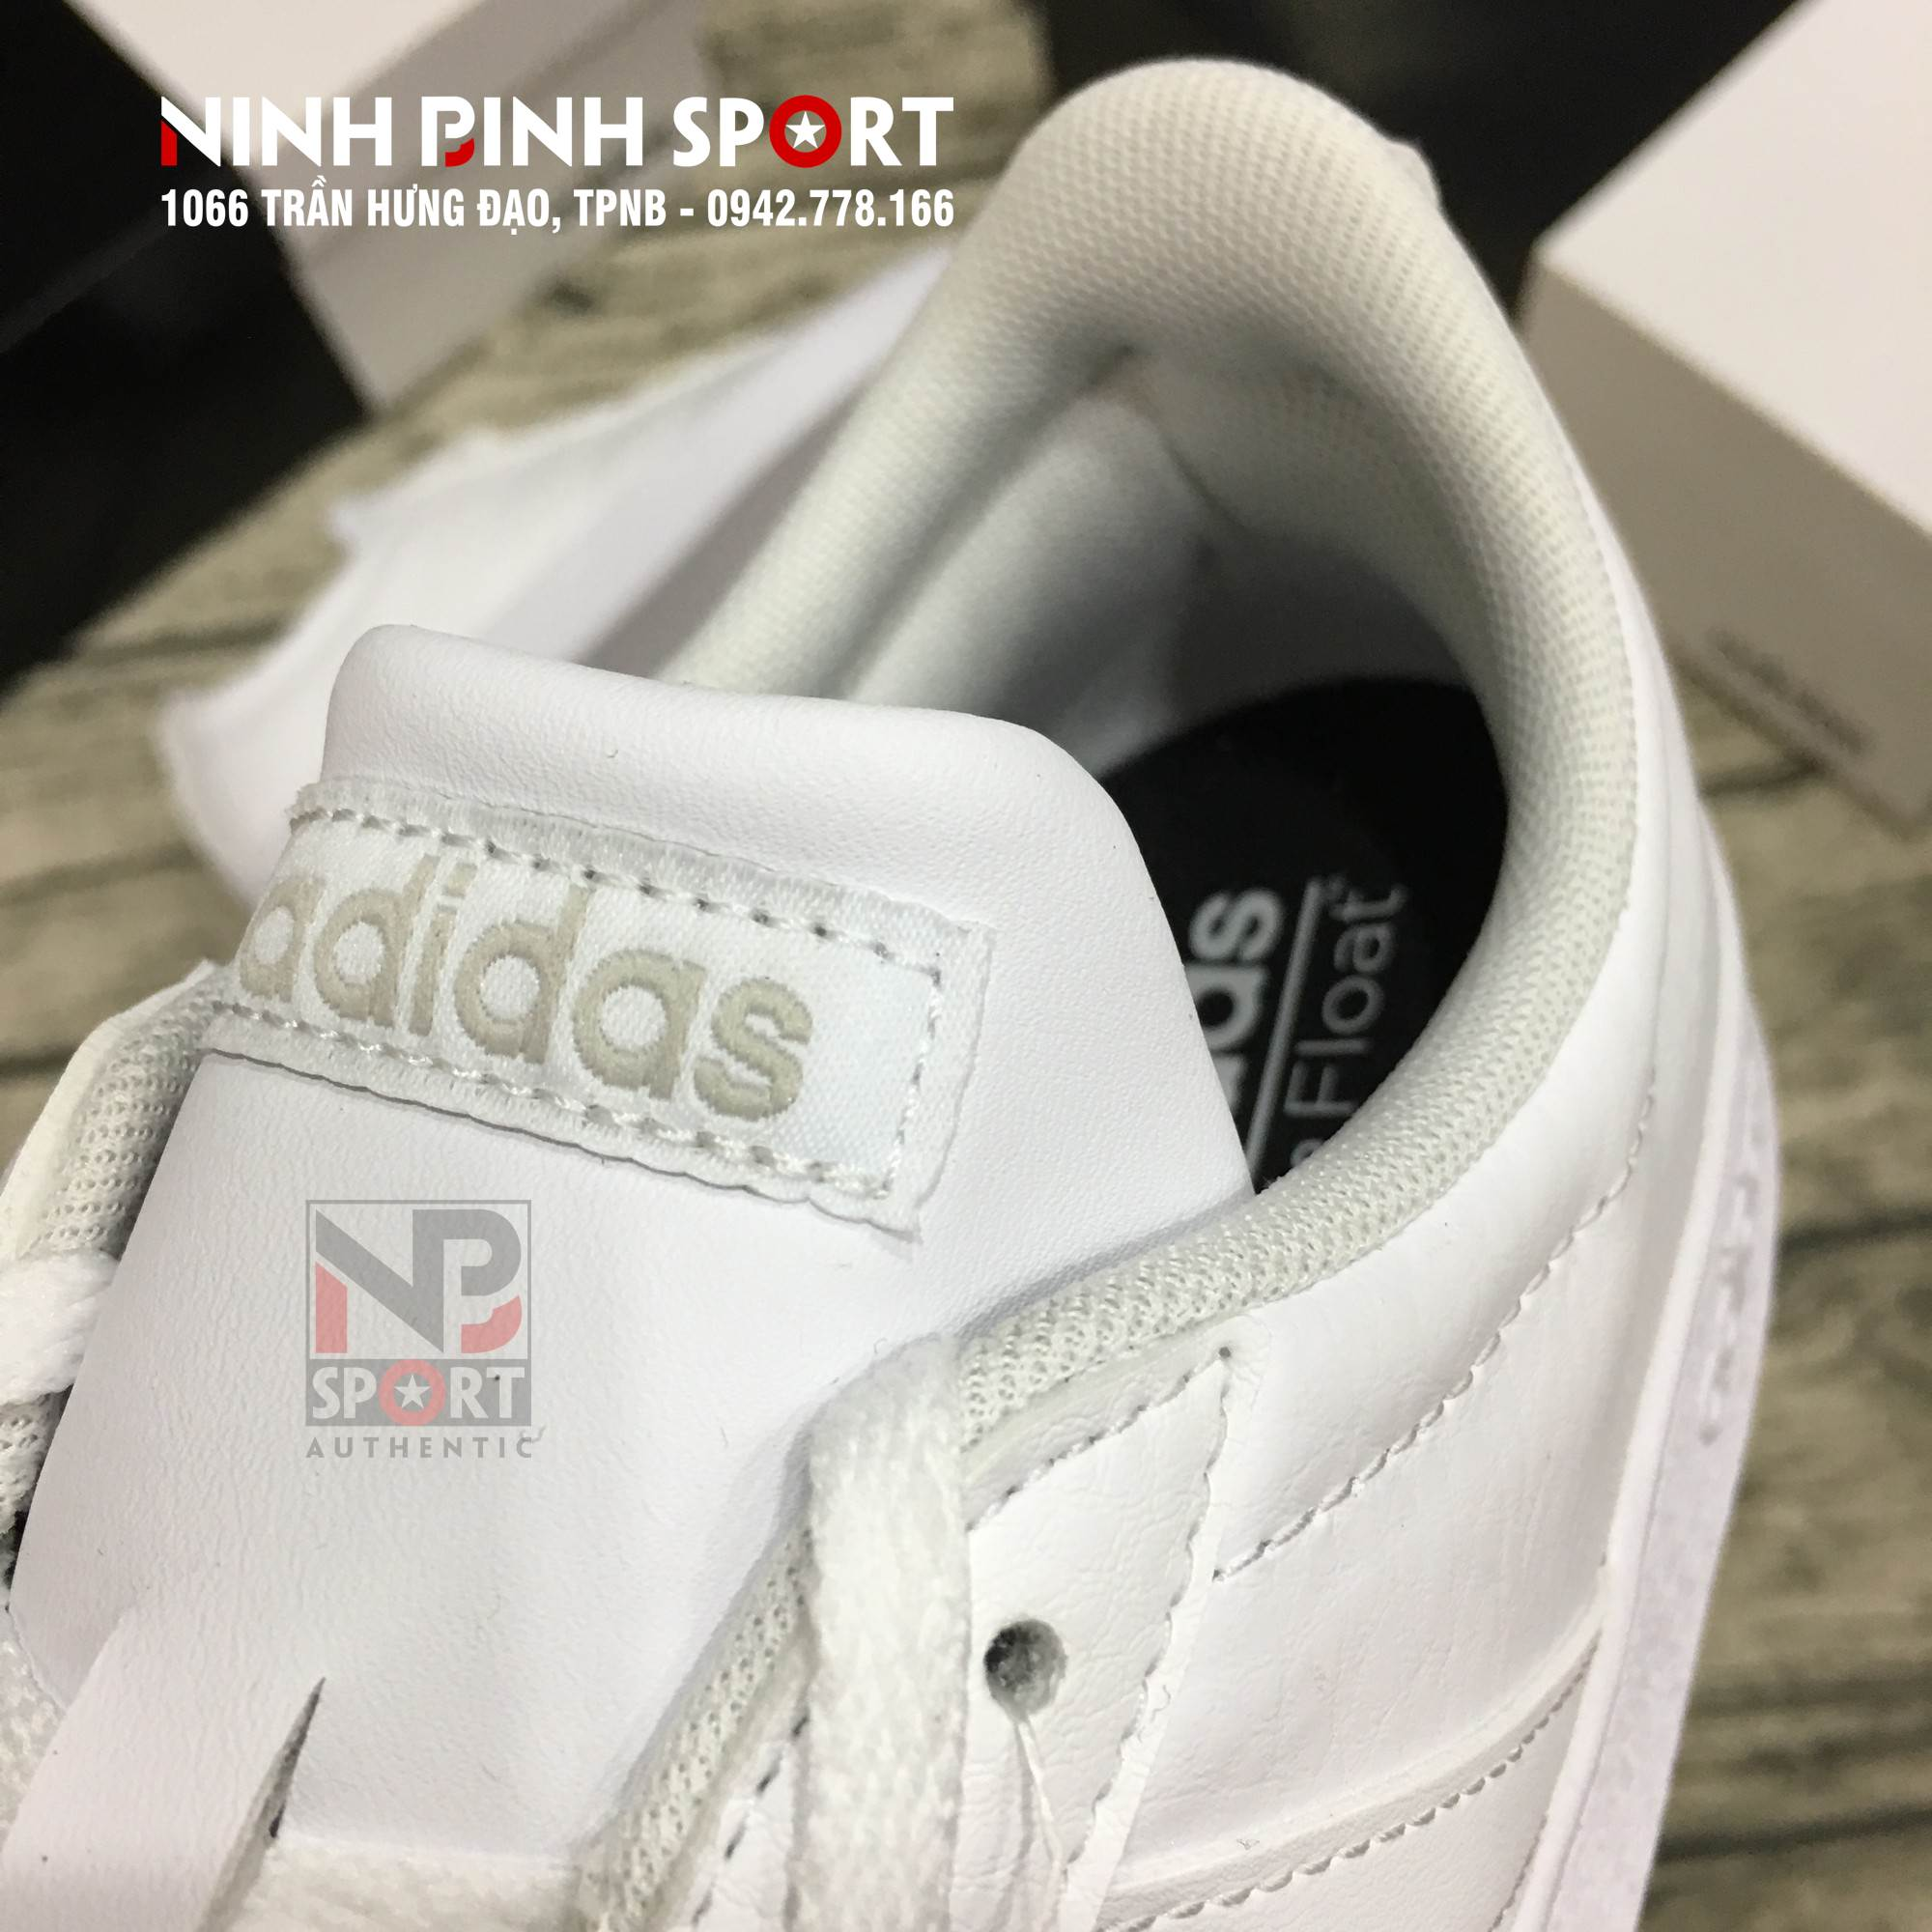 Giầy thể thao nam Adidas Neo VL COURT 2.0 B43815